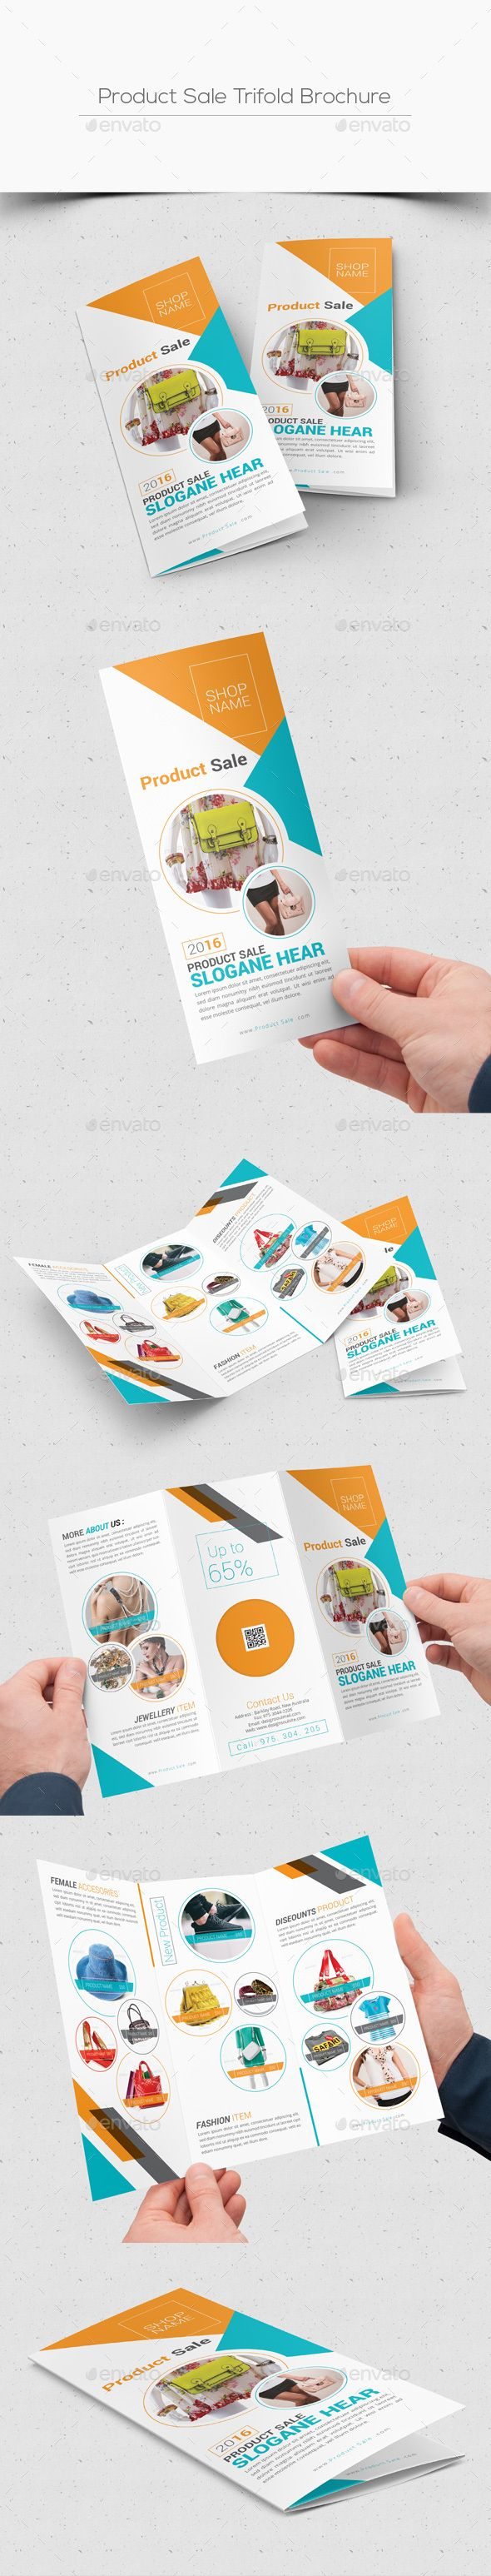 Product Sale Trifold Brochure Brochures Psd Templates And Template - 85x11 tri fold brochure template